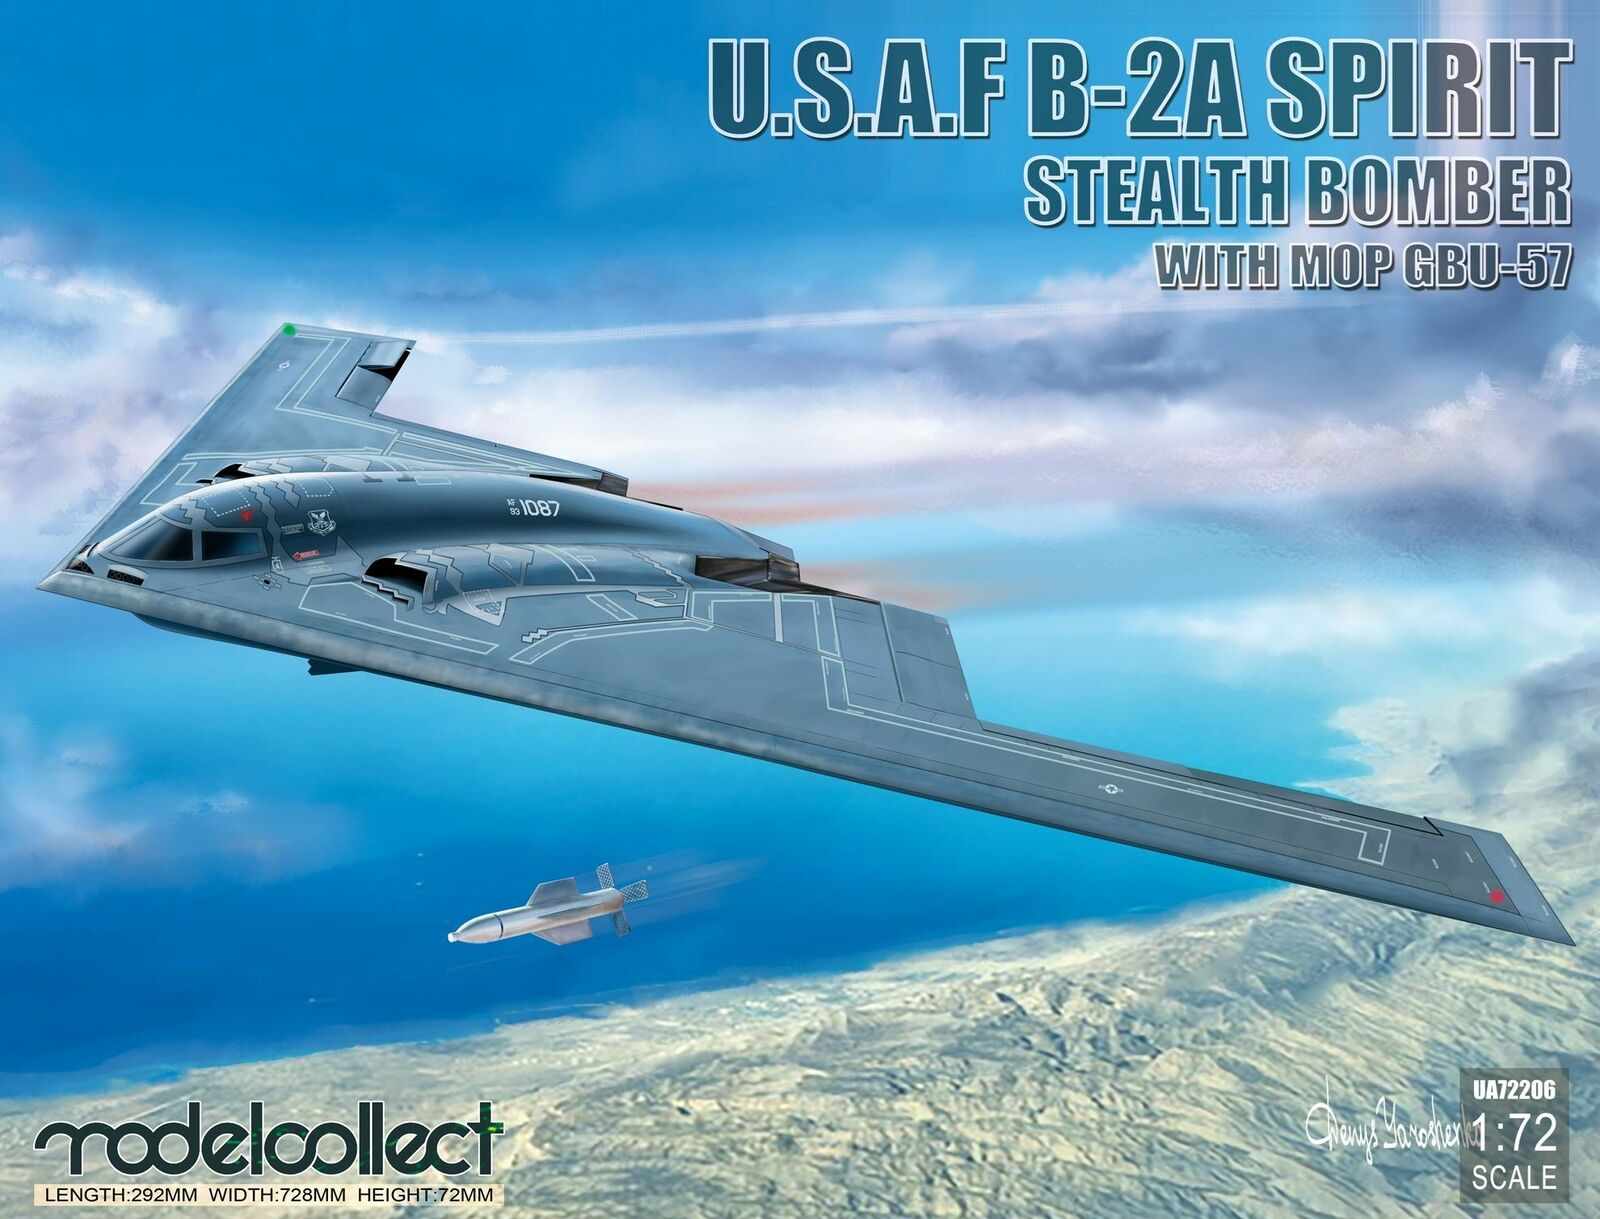 Model Collect 1 72 Northrop U.S.A.F B-2A Spirit Stealth Bomber with Mop GBU-57